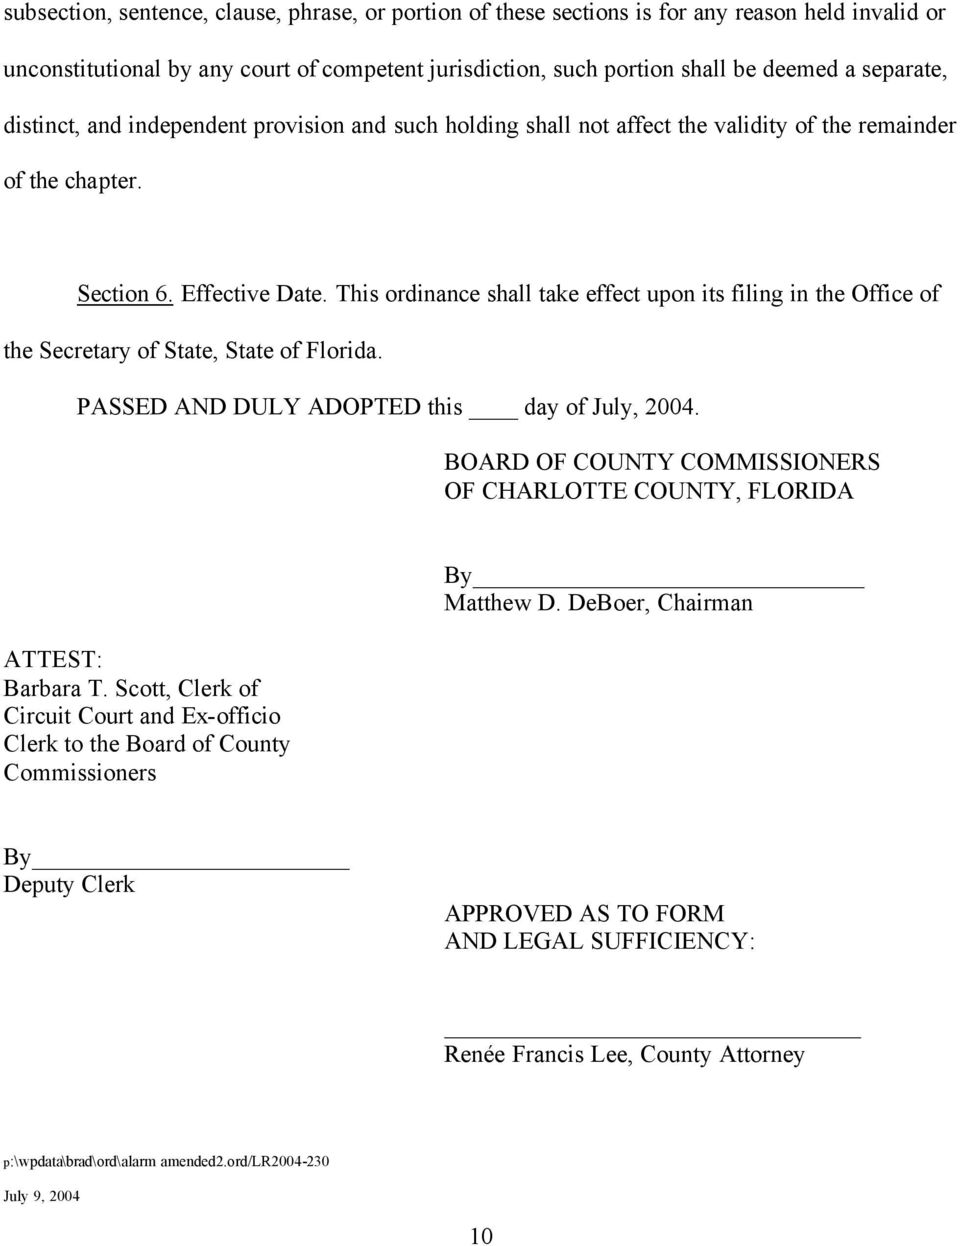 This ordinance shall take effect upon its filing in the Office of the Secretary of State, State of Florida. PASSED AND DULY ADOPTED this day of July, 2004.